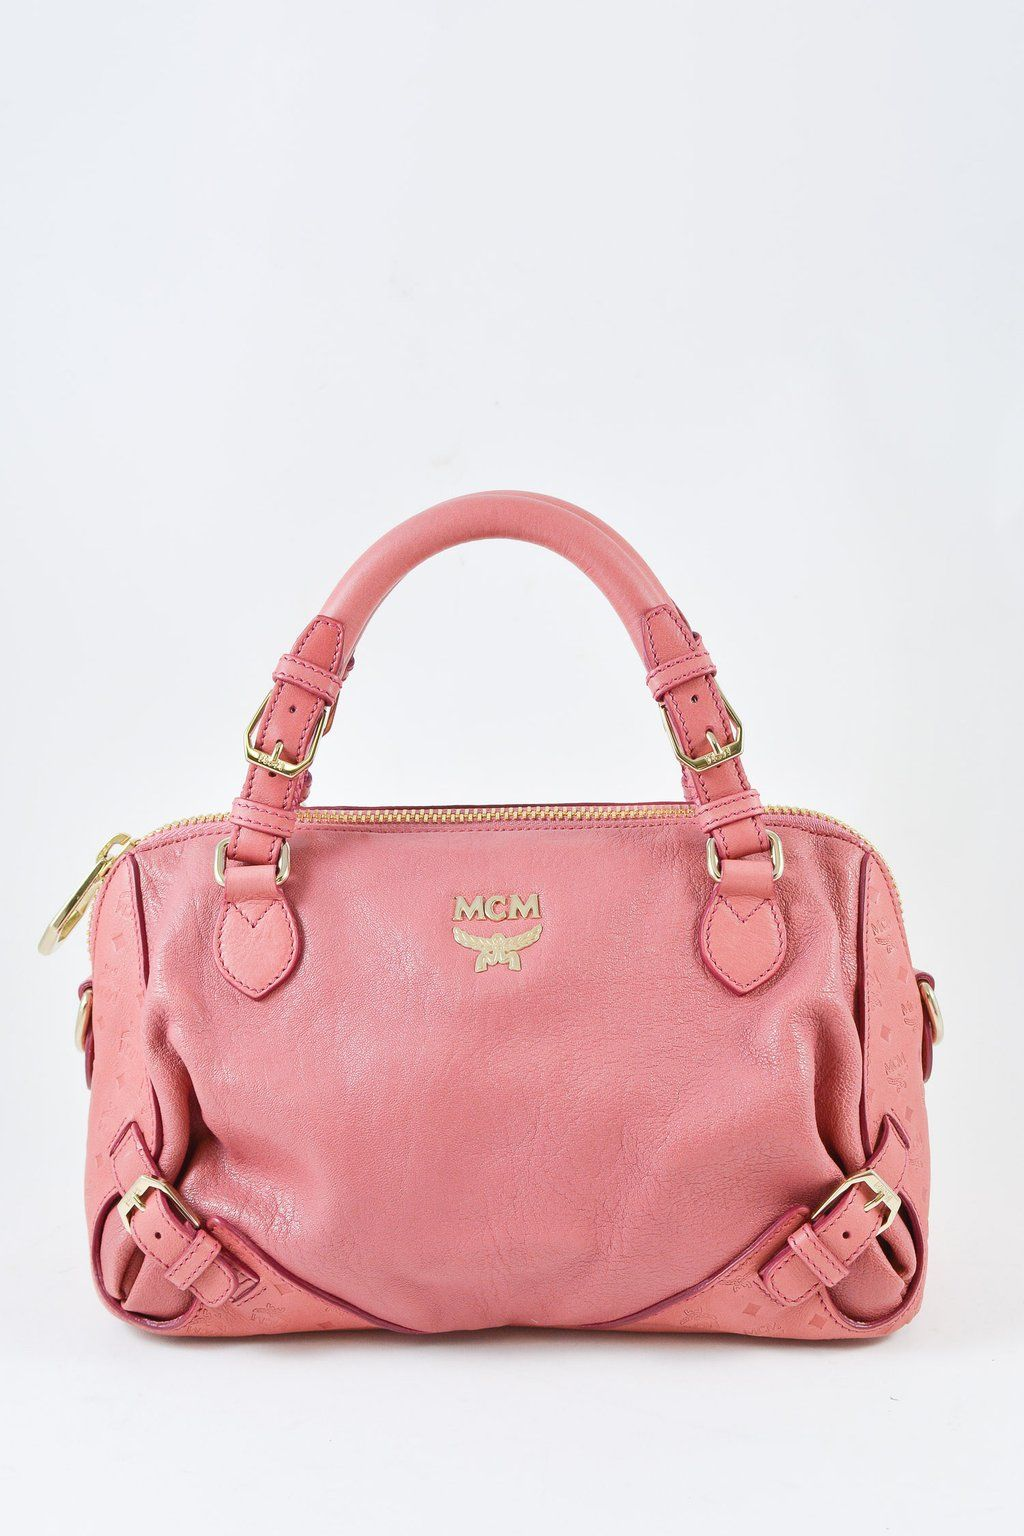 27573e1d1f0 MCM Small Pink Top Handle Bag. Small pink leather and gold-tone hardware bag